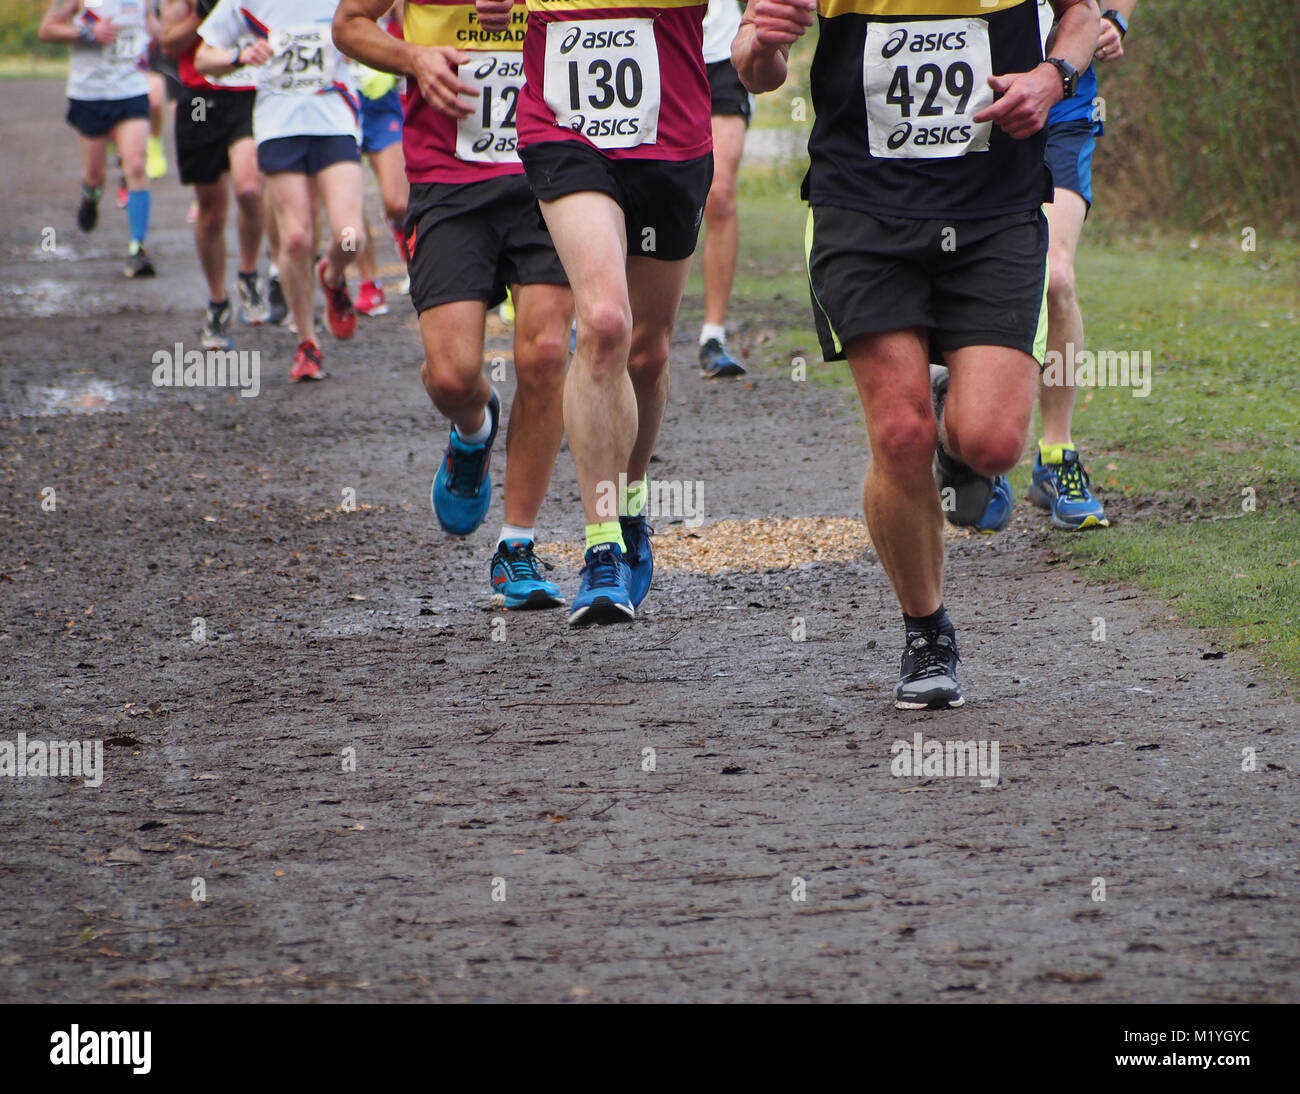 The legs of runners taking part in a trail, off road race - Stock Image